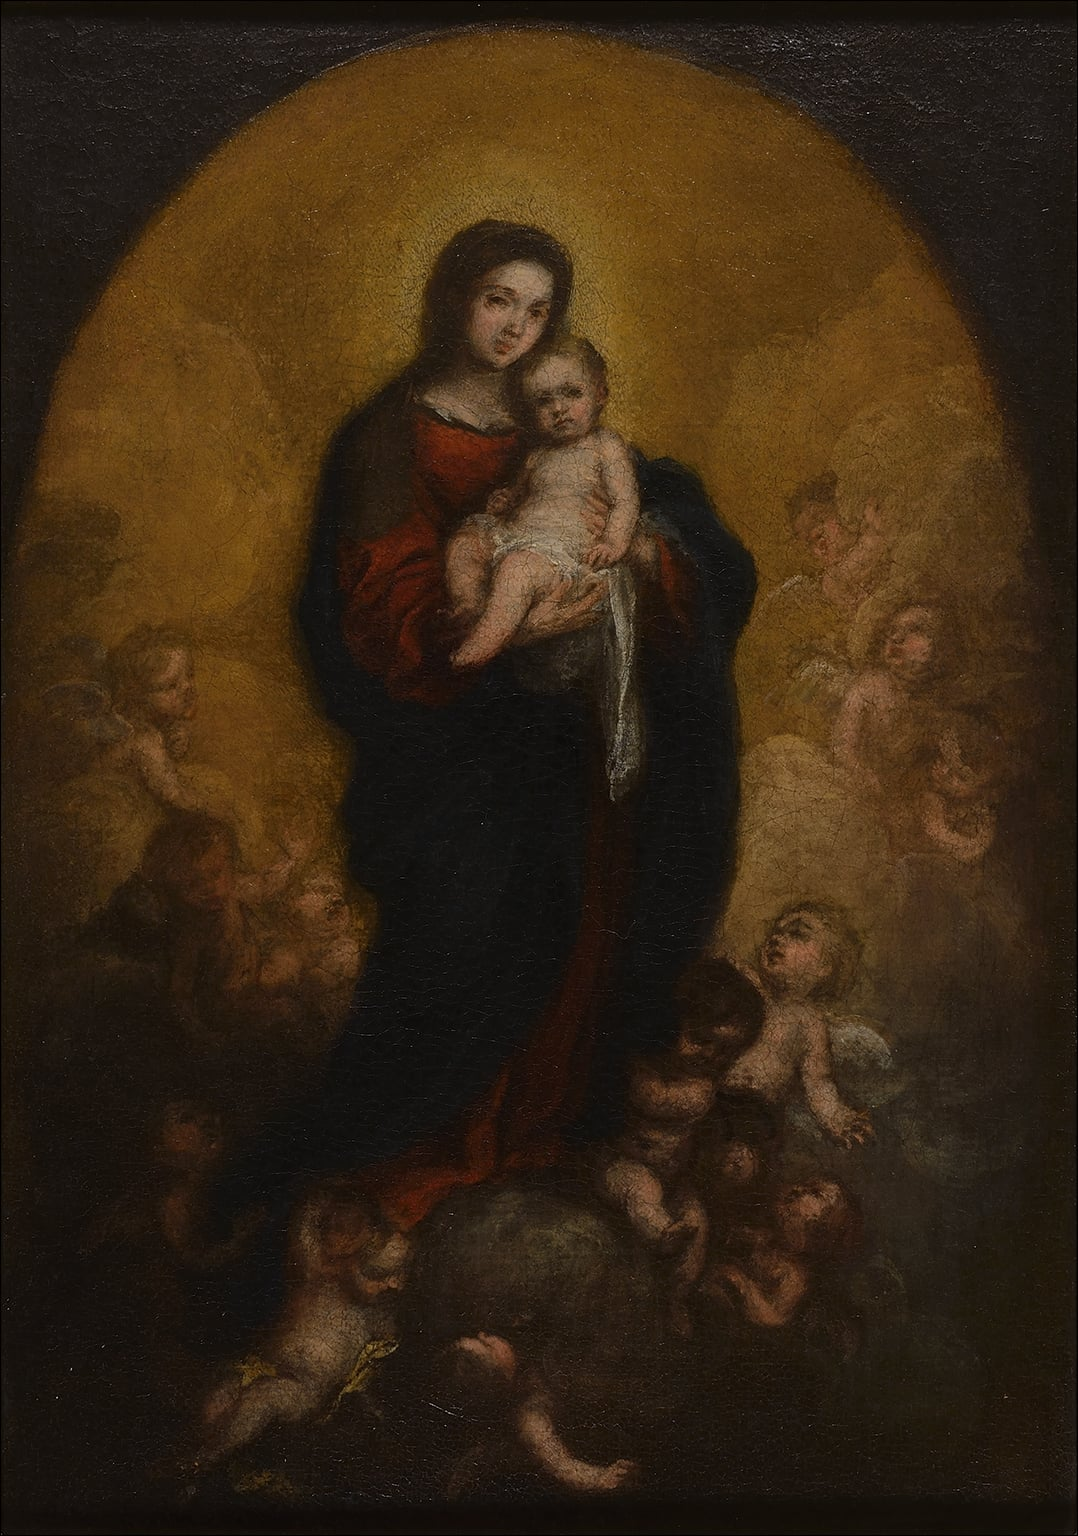 Oil study for 'The Virgin and Child in Glory'